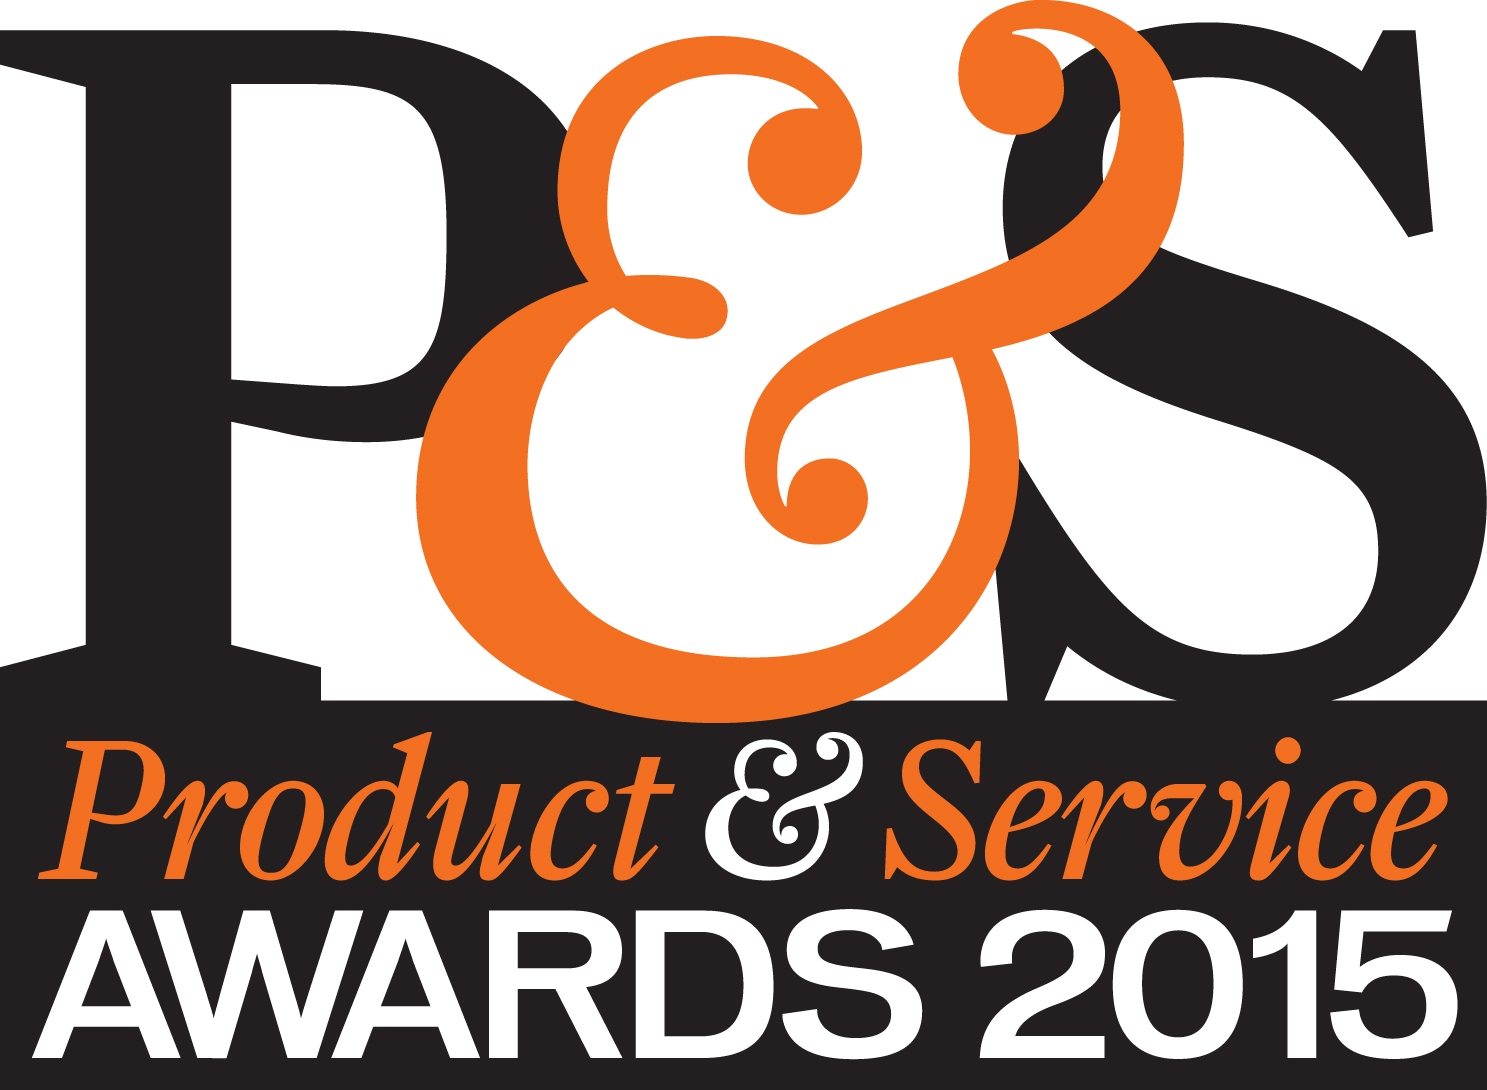 P & S Product & Service Awards 2015